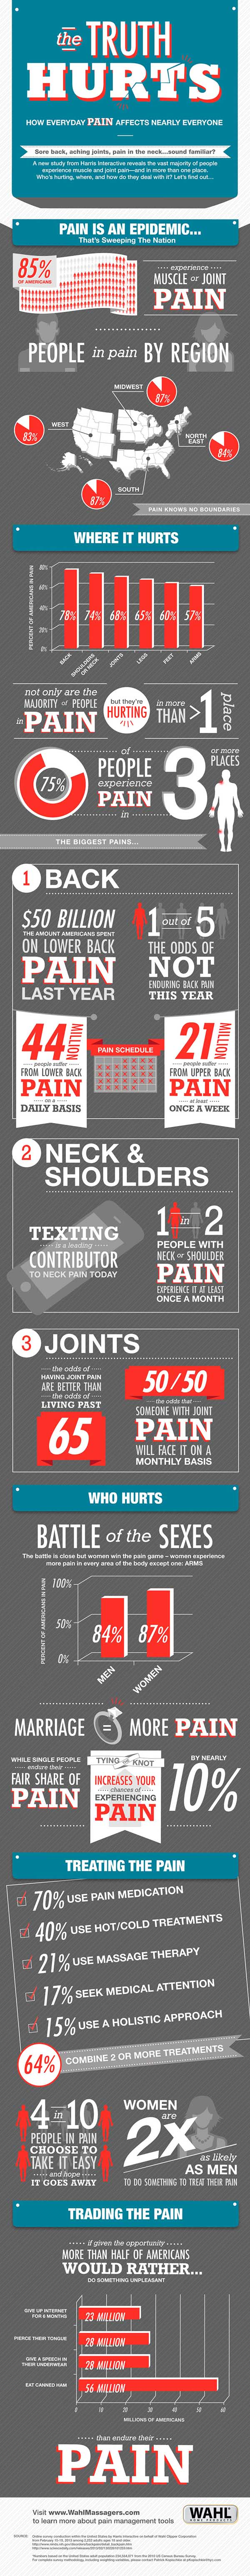 1. Chronic pain by the numbers